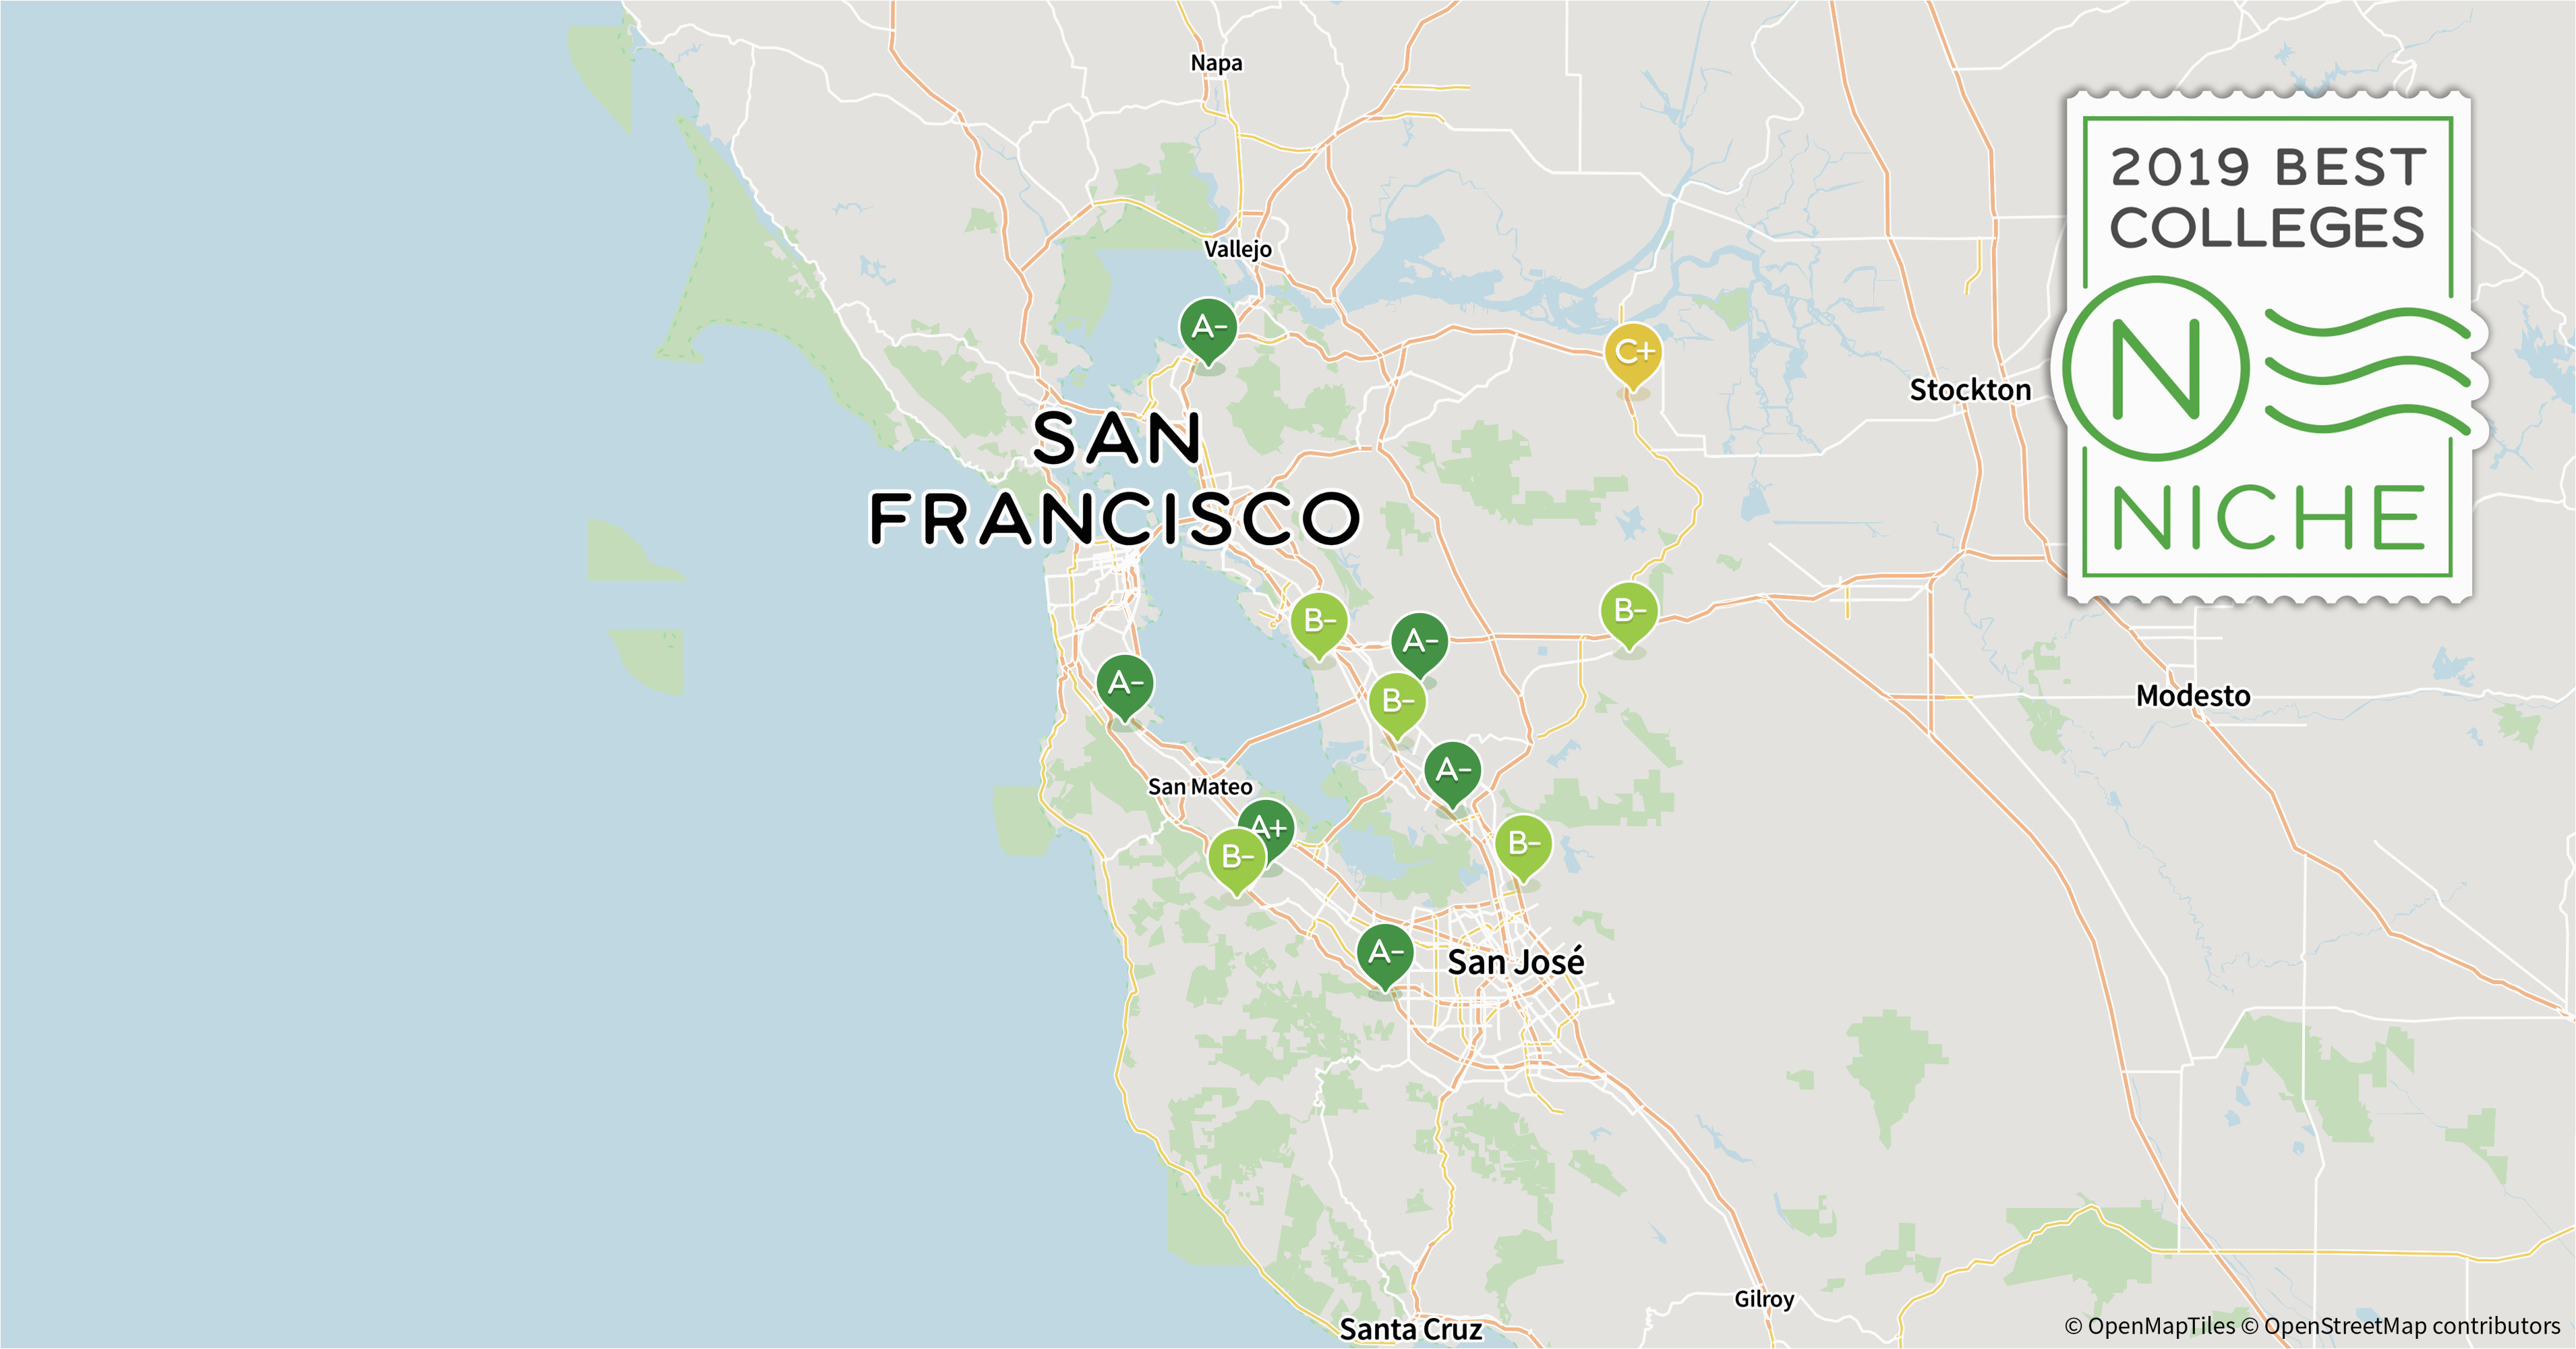 2019 best colleges in san francisco bay area niche